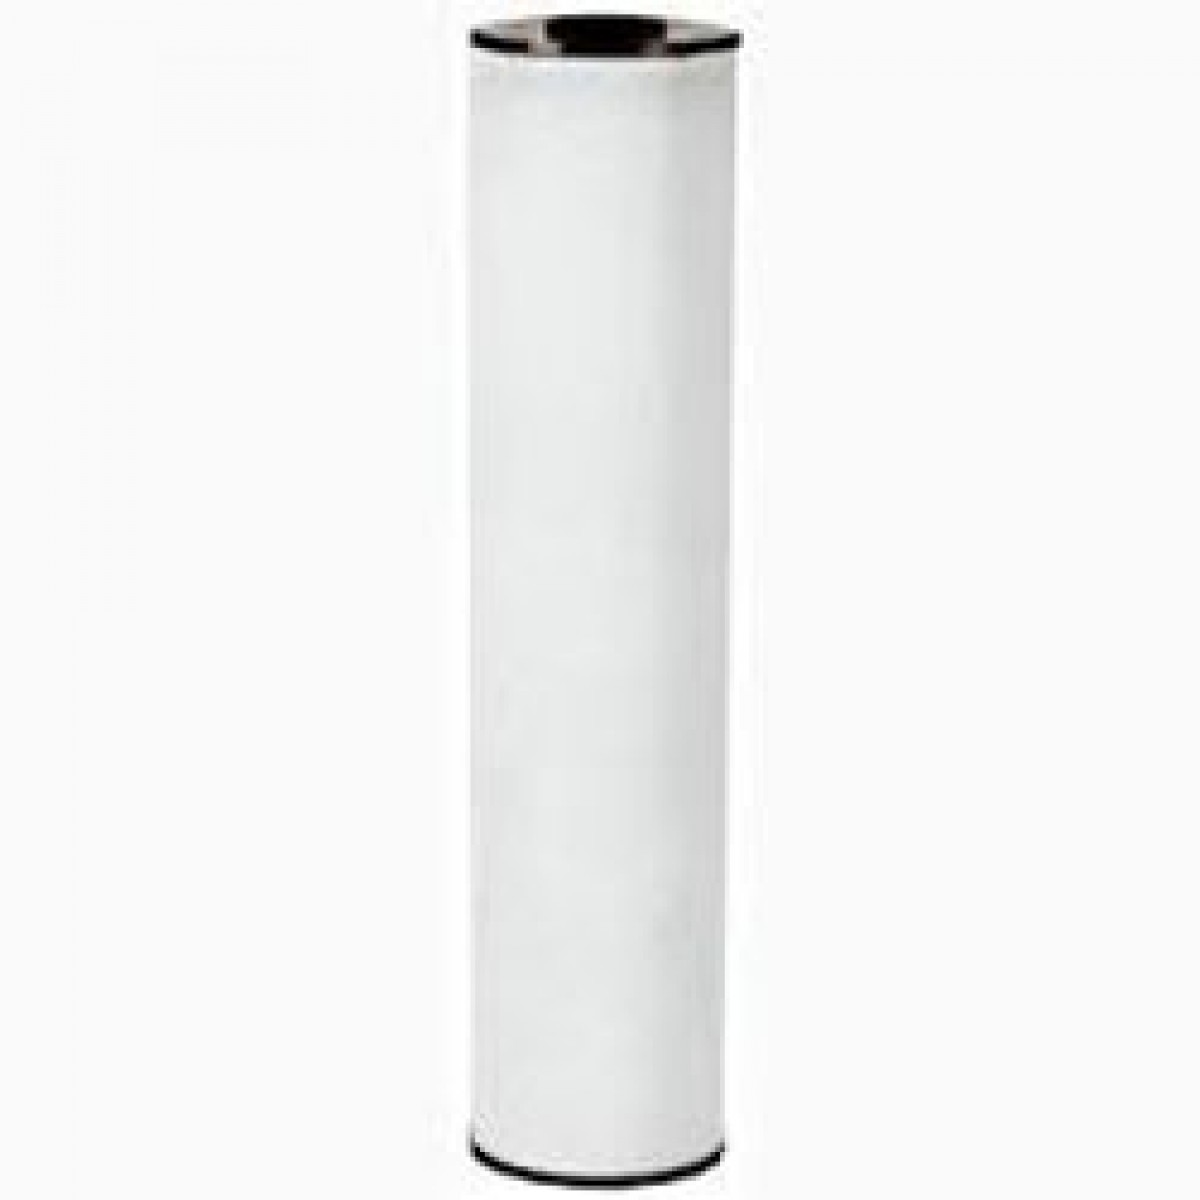 Watts Water Filter Replacement Watts Fpir Bb 20 Whole House Replacement Filter Cartridge